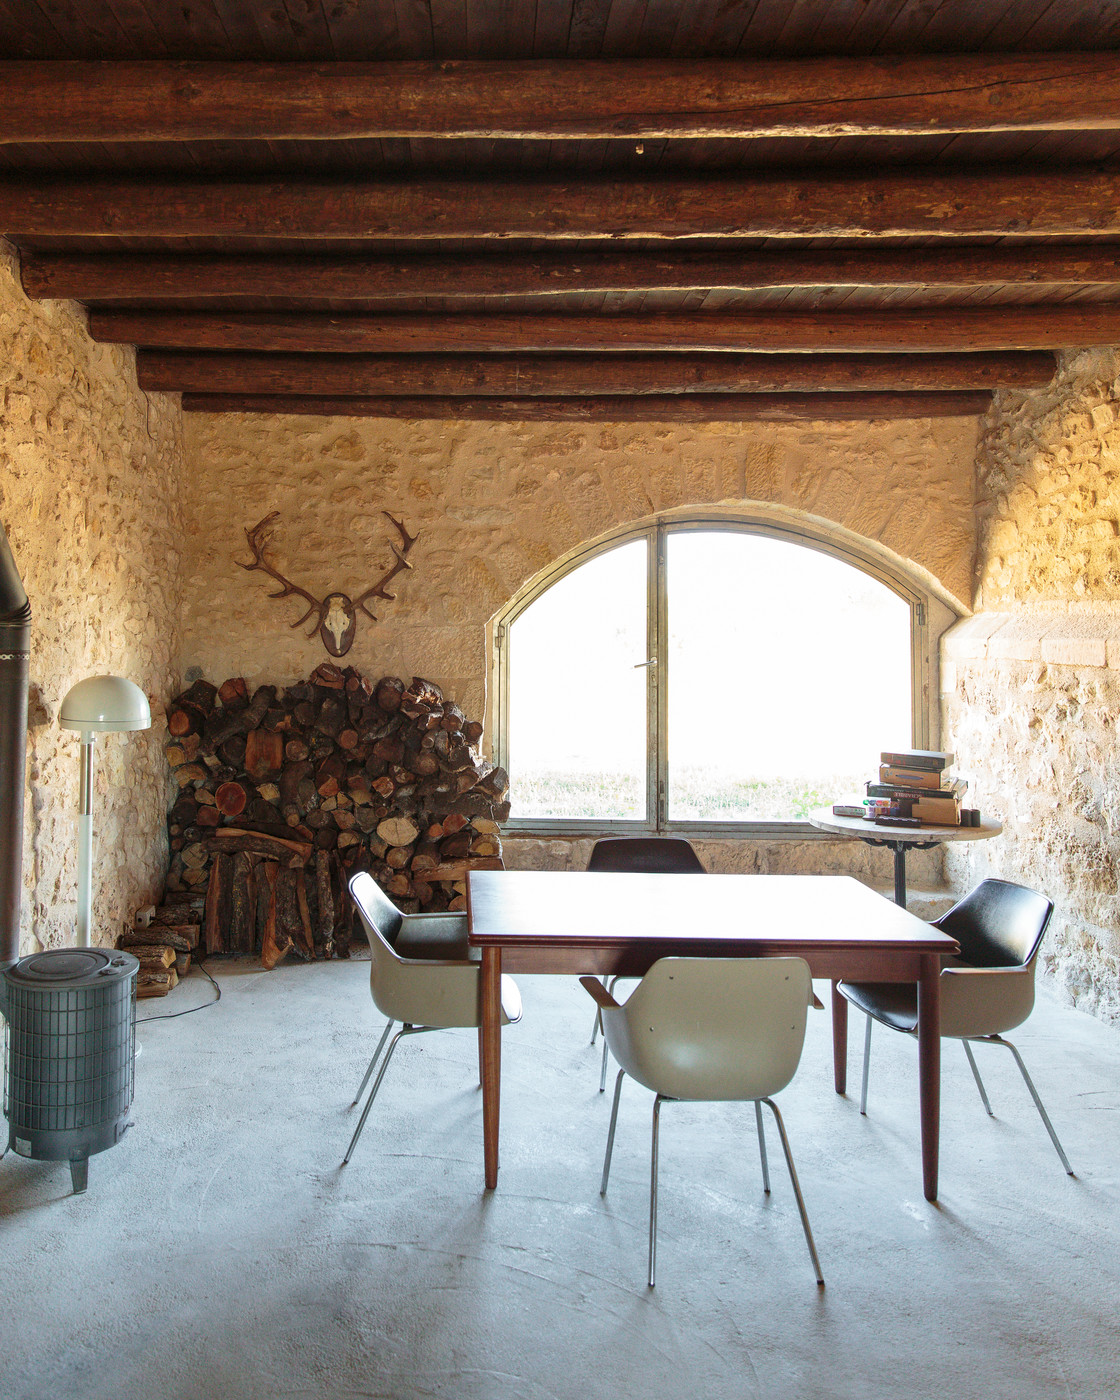 Rustic wall treatment photos design ideas remodel and decor lonny - Rustic wall covering ideas ...